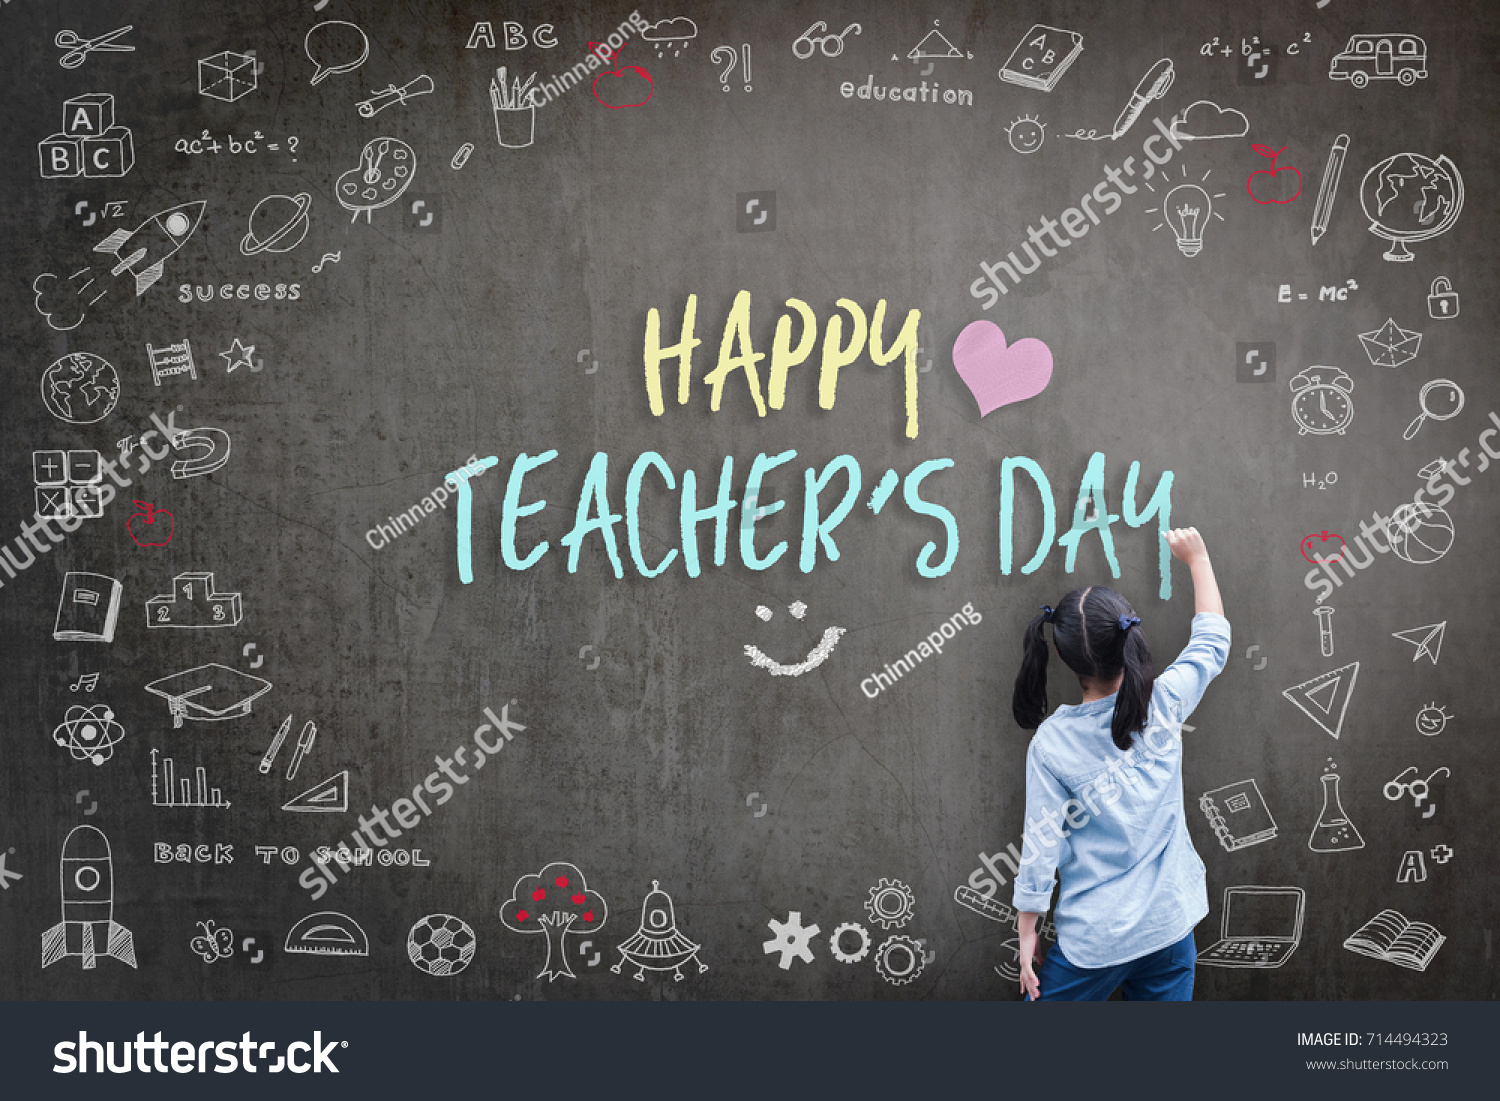 Happy teachers day greeting card world stock photo 714494323 happy teachers day greeting card for world teachers day concept with school student back view drawing kristyandbryce Images